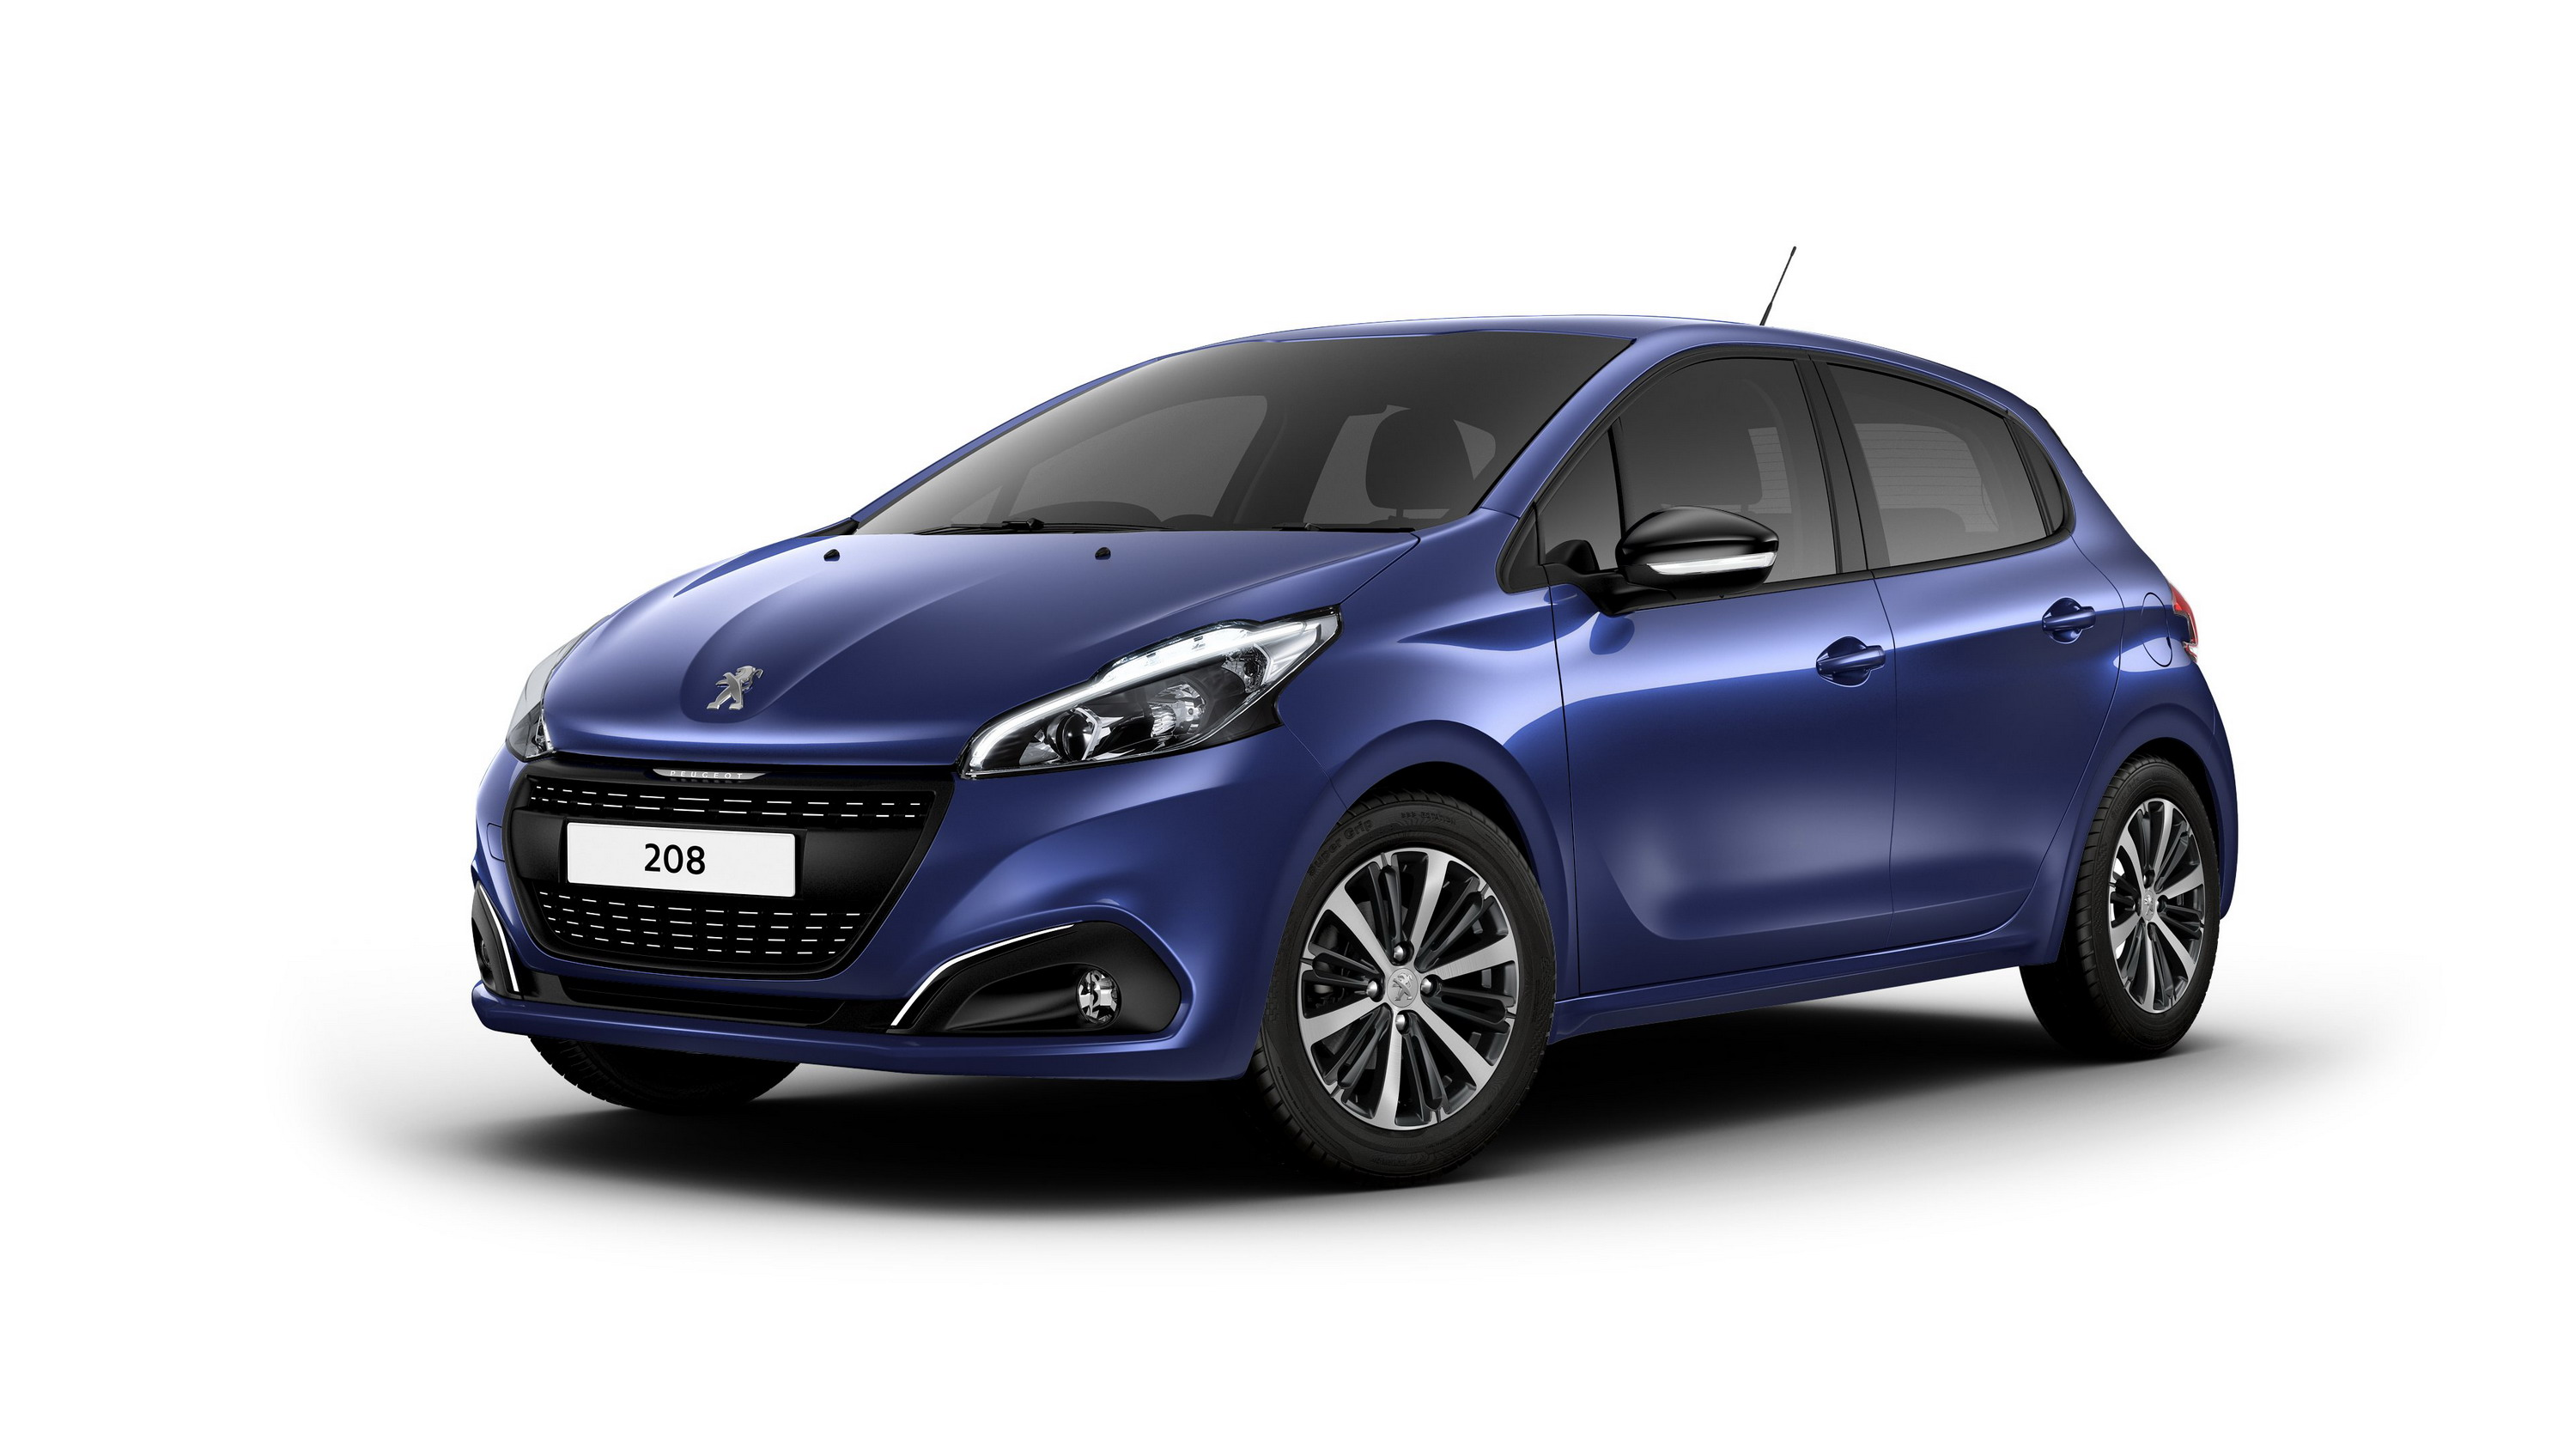 2016 Peugeot 208 XS Special Edition   Top Speed